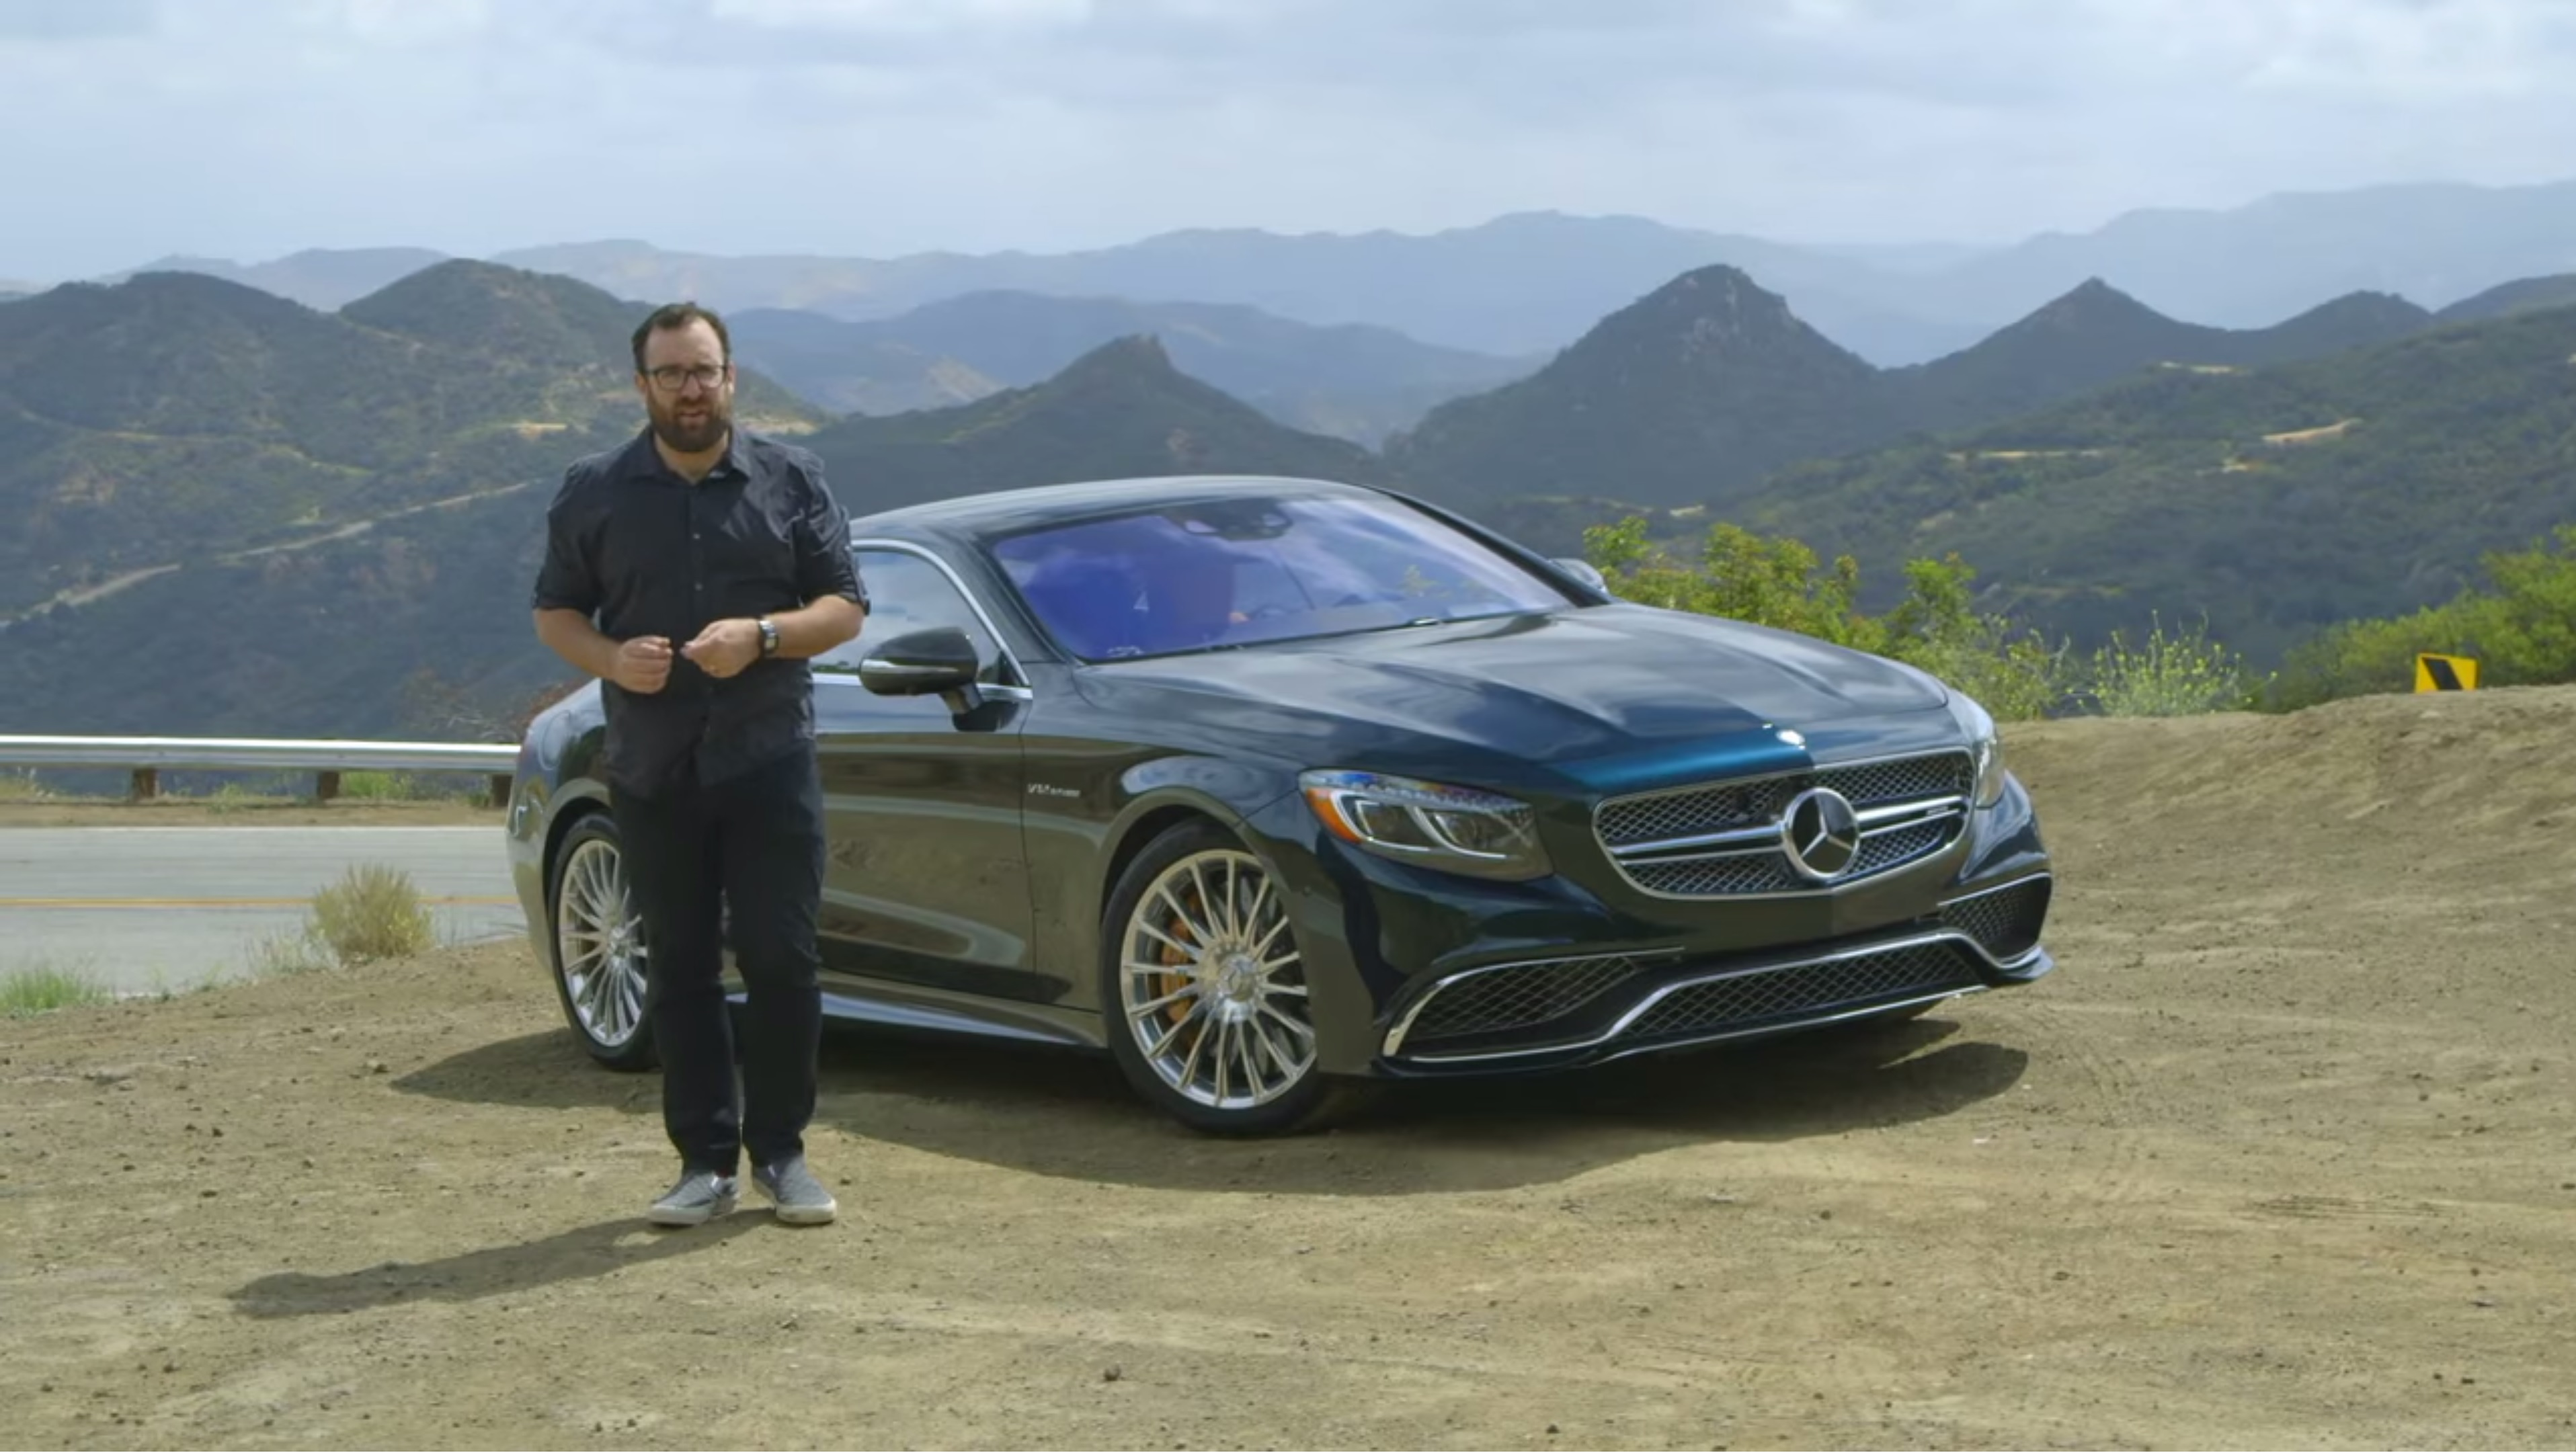 2018 Mercedes Benz S65 AMG Coupe photo - 2